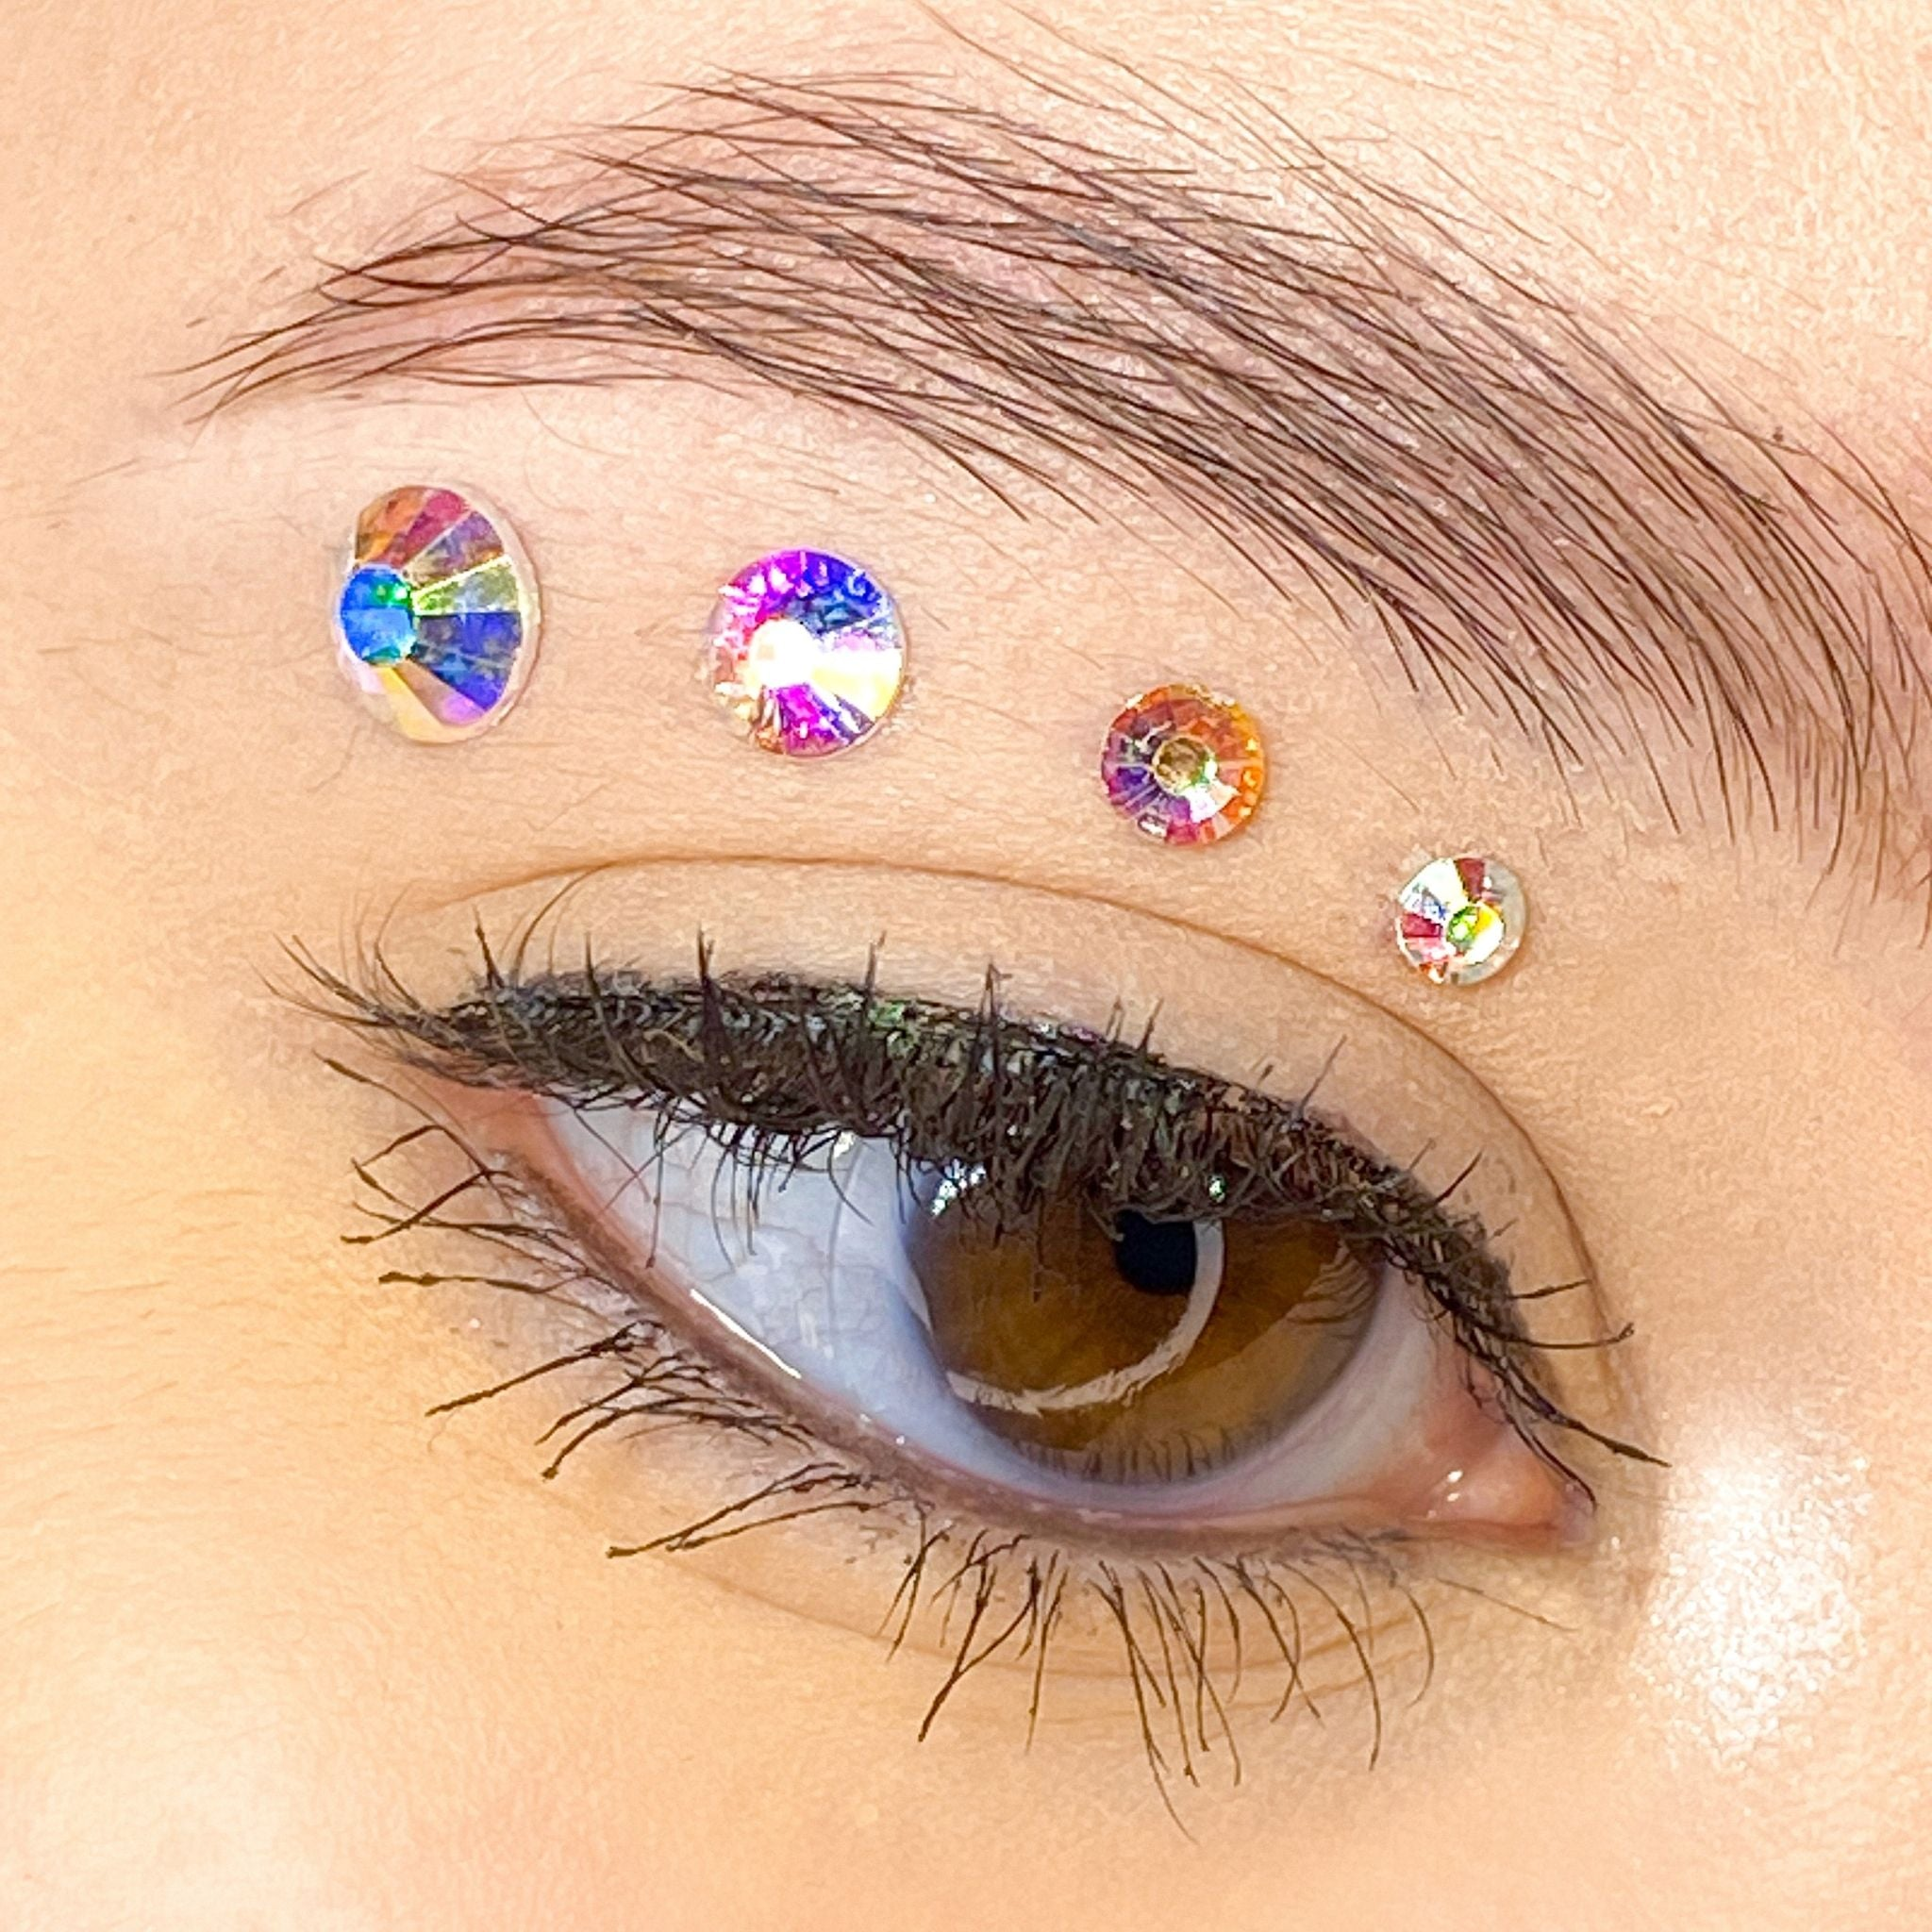 Holographic Crystal Gems for makeup | Holographic Crystal Rhinestones for makeup | Crystal AB Swarovski Rhinestones | Crystal AB Flatback Rhinestones | Euphoria Face Jewels | Glass Rhinestones | High Quality Gems